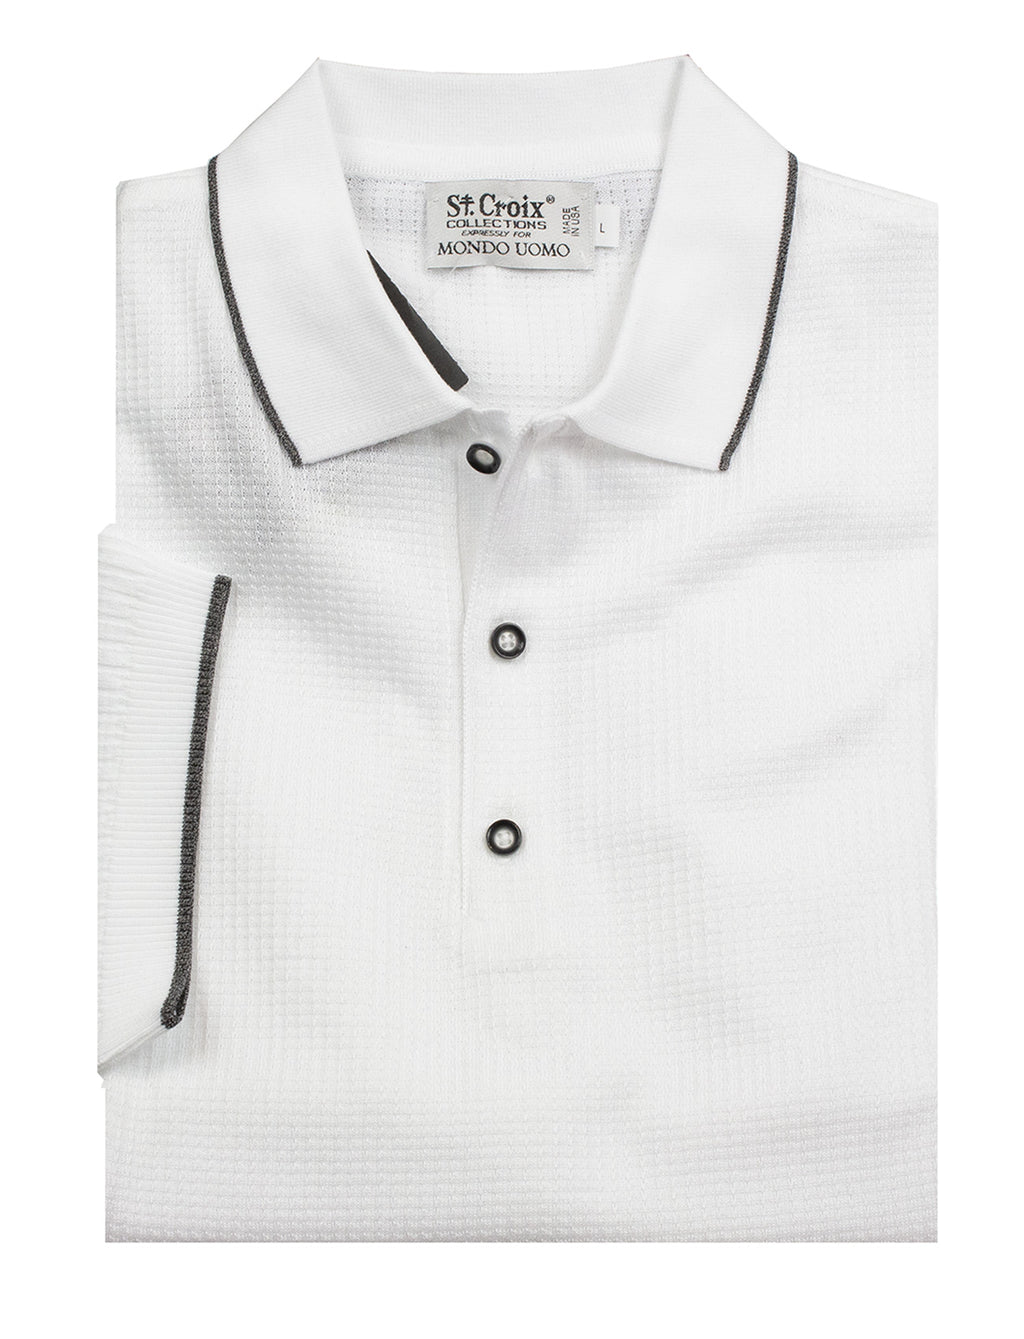 St Croix Polo Knit White Waffle